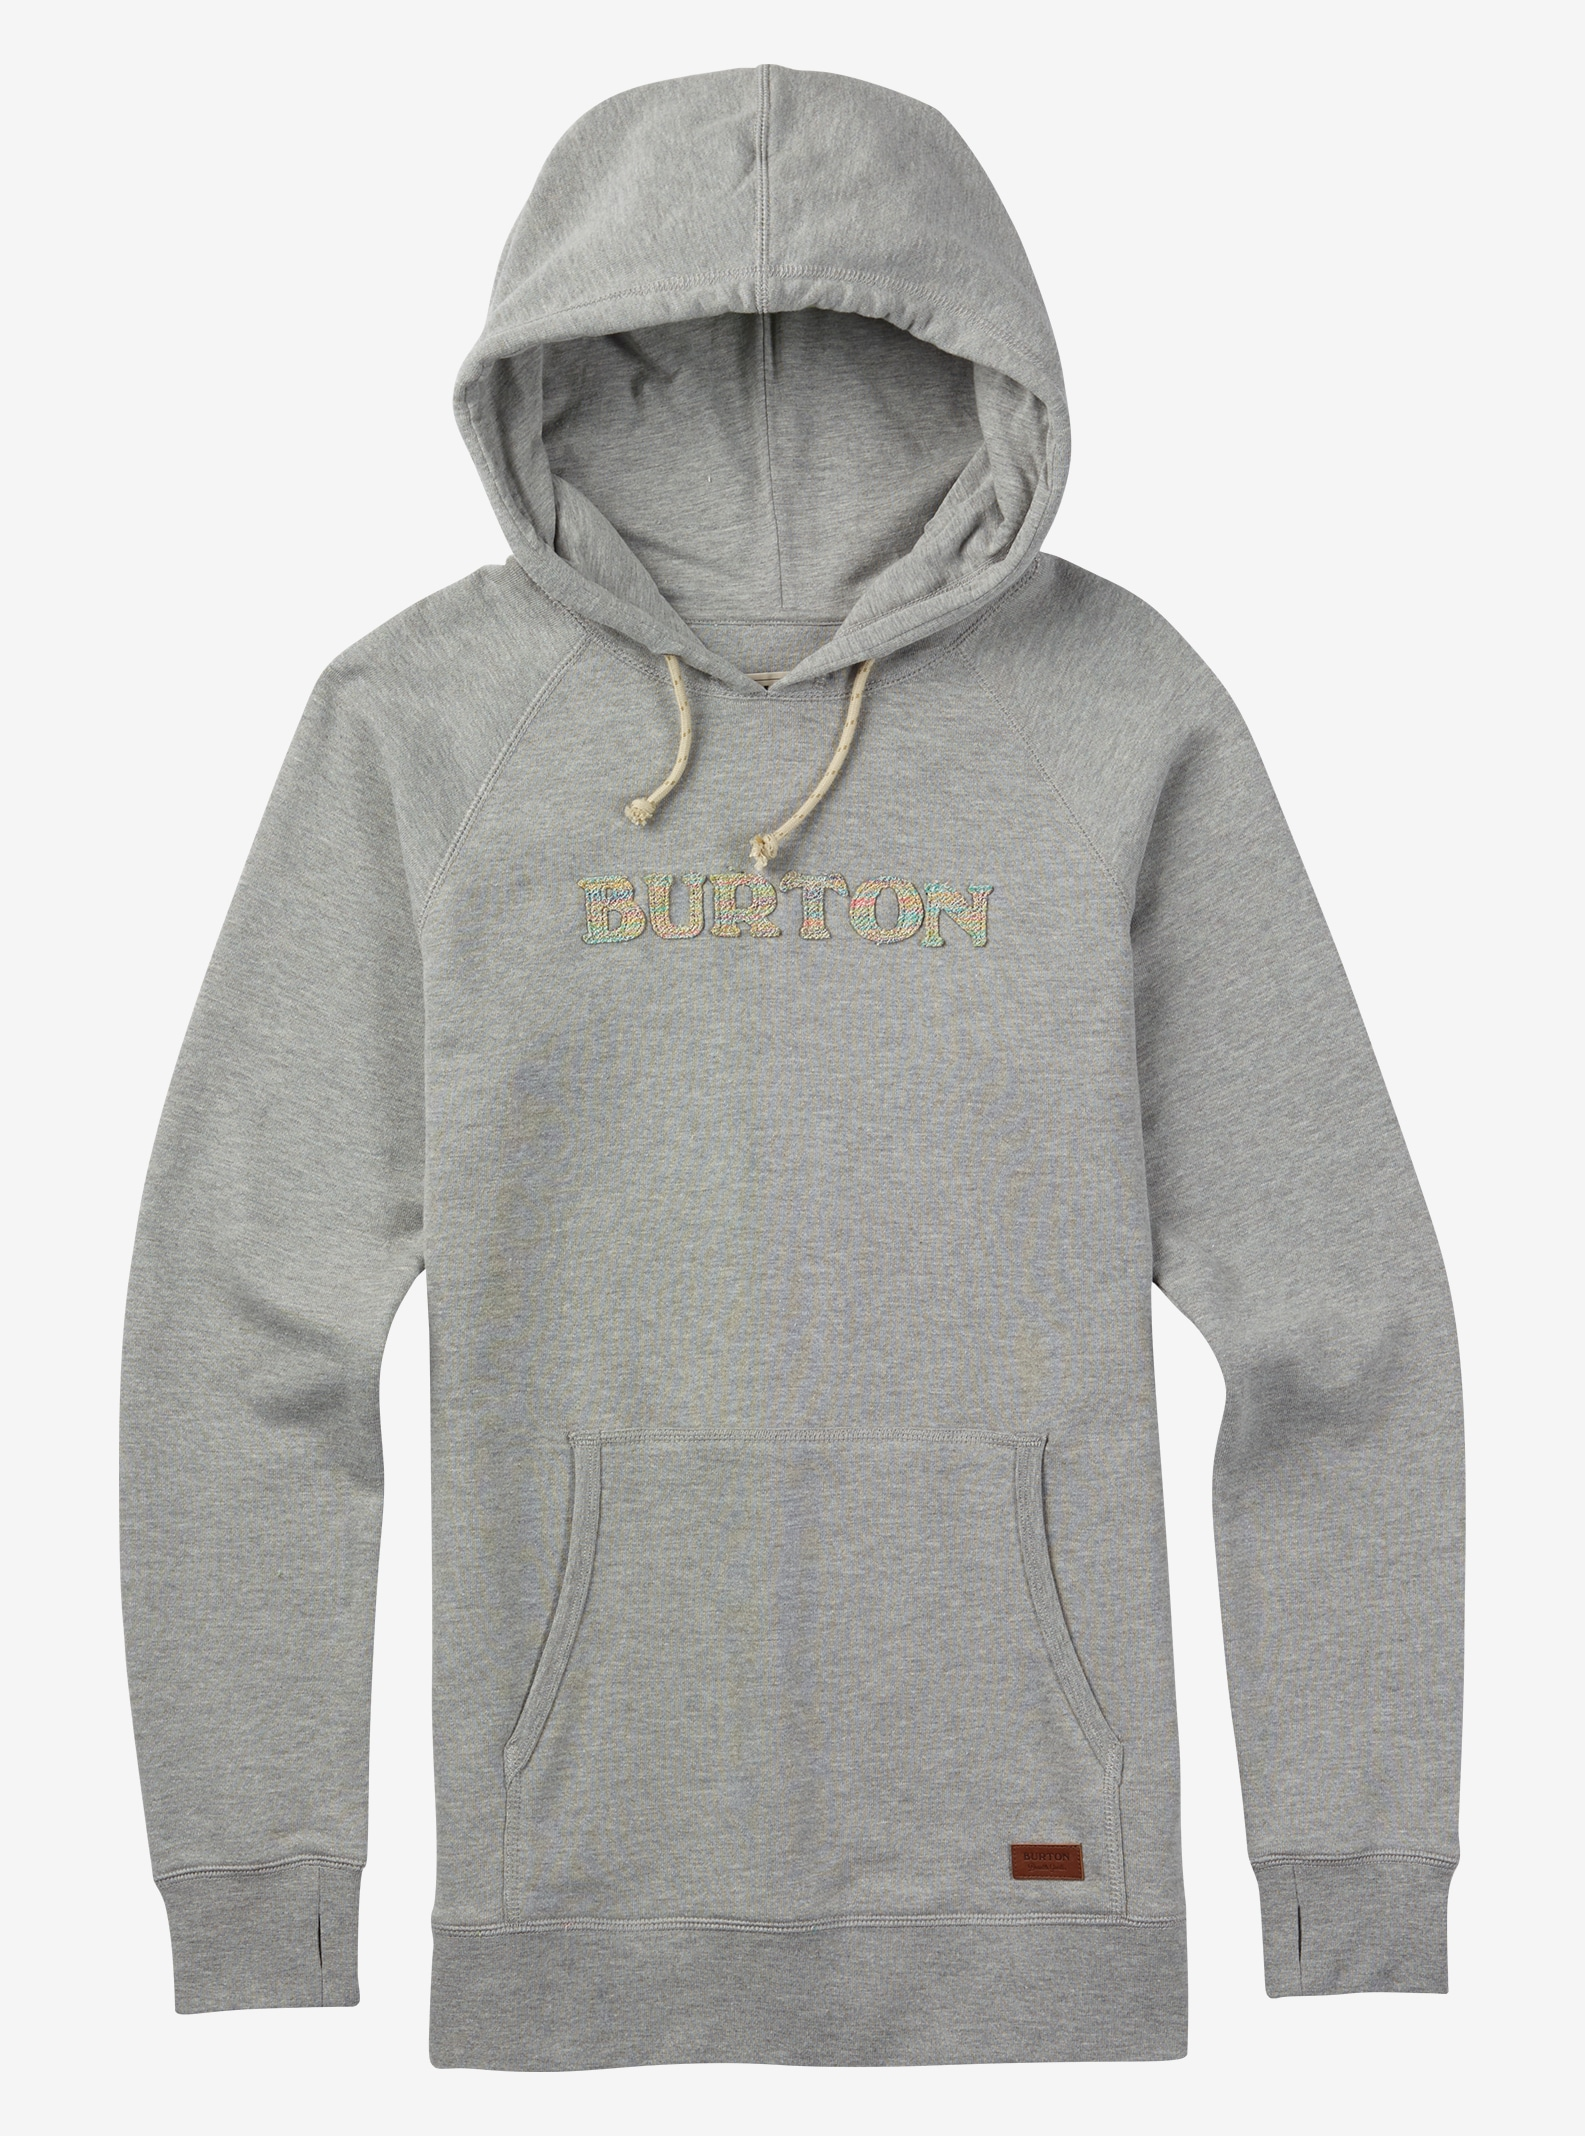 Burton Custom Hoodie angezeigt in Gray Heather